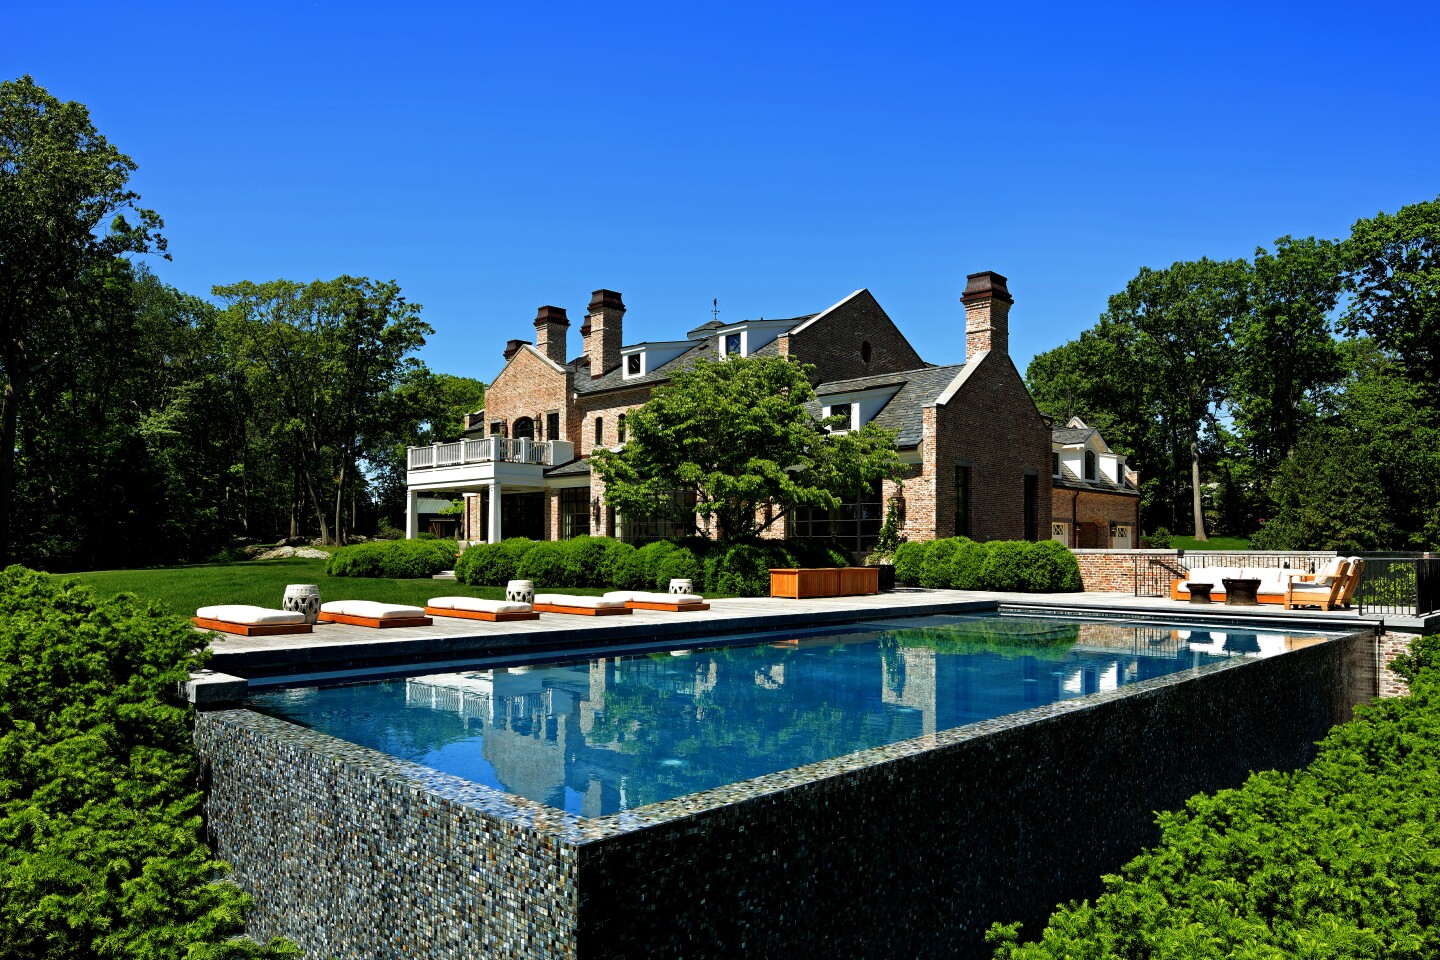 Tom Brady and wife Gisele Bündchen are now asking $33.9 million for their Massachusetts home, down about $6 million from when the five-acre estate first listed for sale last year. The Richard Landry-designed manor features a classic brick exterior, modern amenities and a country-inspired kitchen. The skylight-topped breakfast room features a wall of steel-framed doors and windows that takes in leafy views. A barn-inspired guest house accompanies the 10,000-square-foot main house. Elsewhere on the grounds is a zero-edge swimming pool.